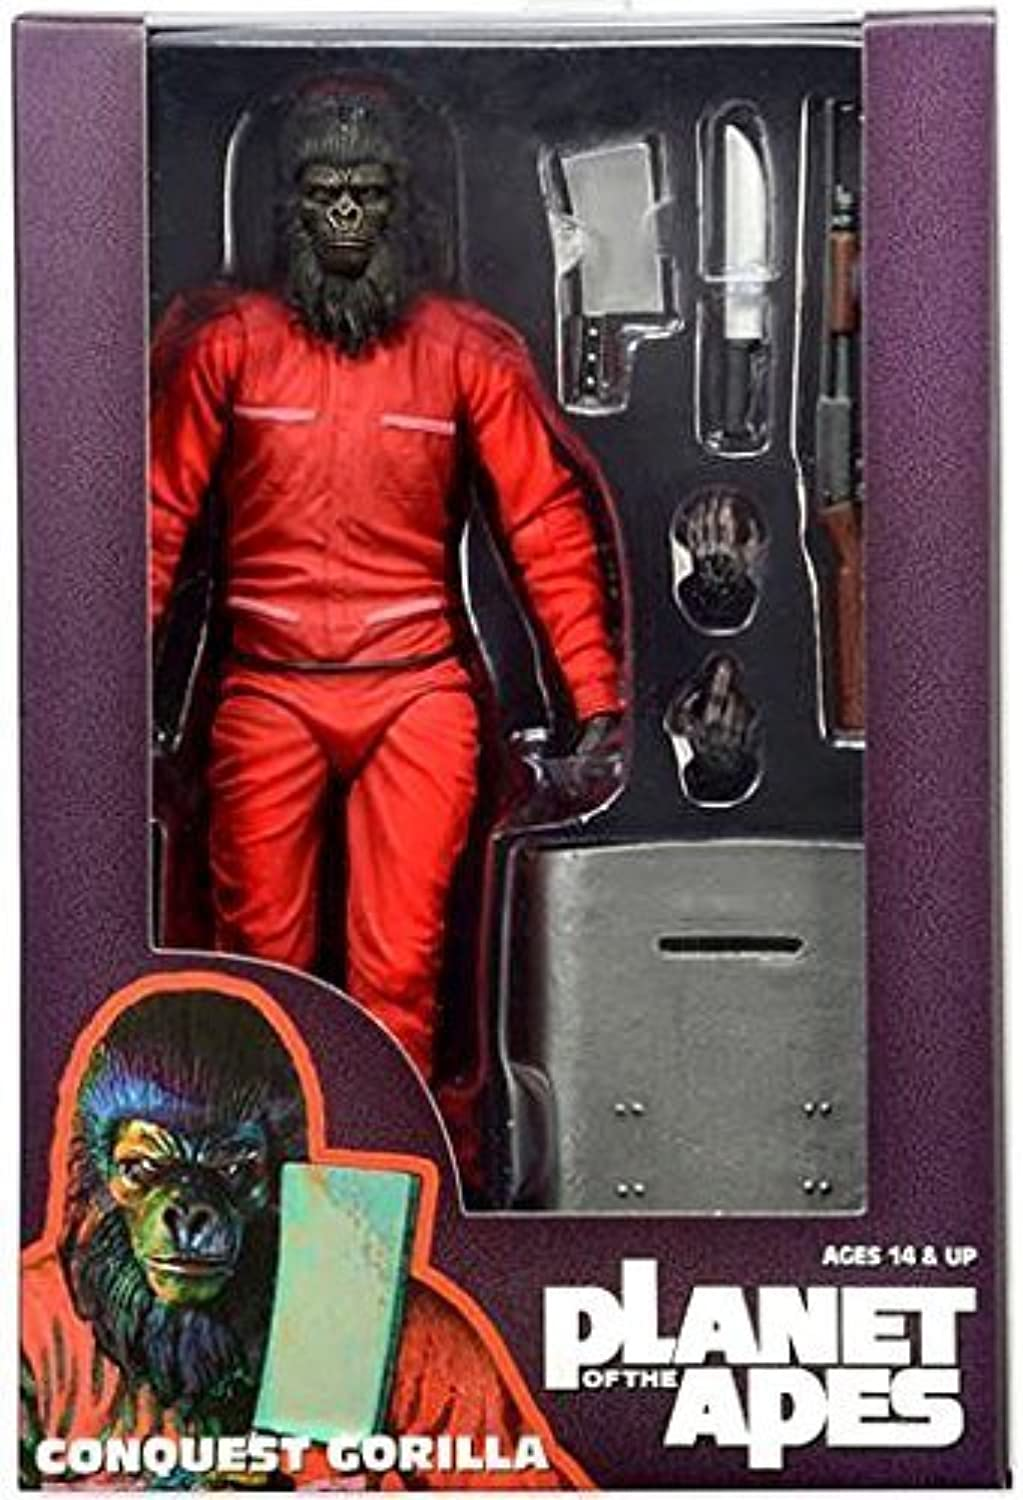 NECA Planet of the Apes classeic Series 3 Conquest Gorilla 7  azione cifra by NECA